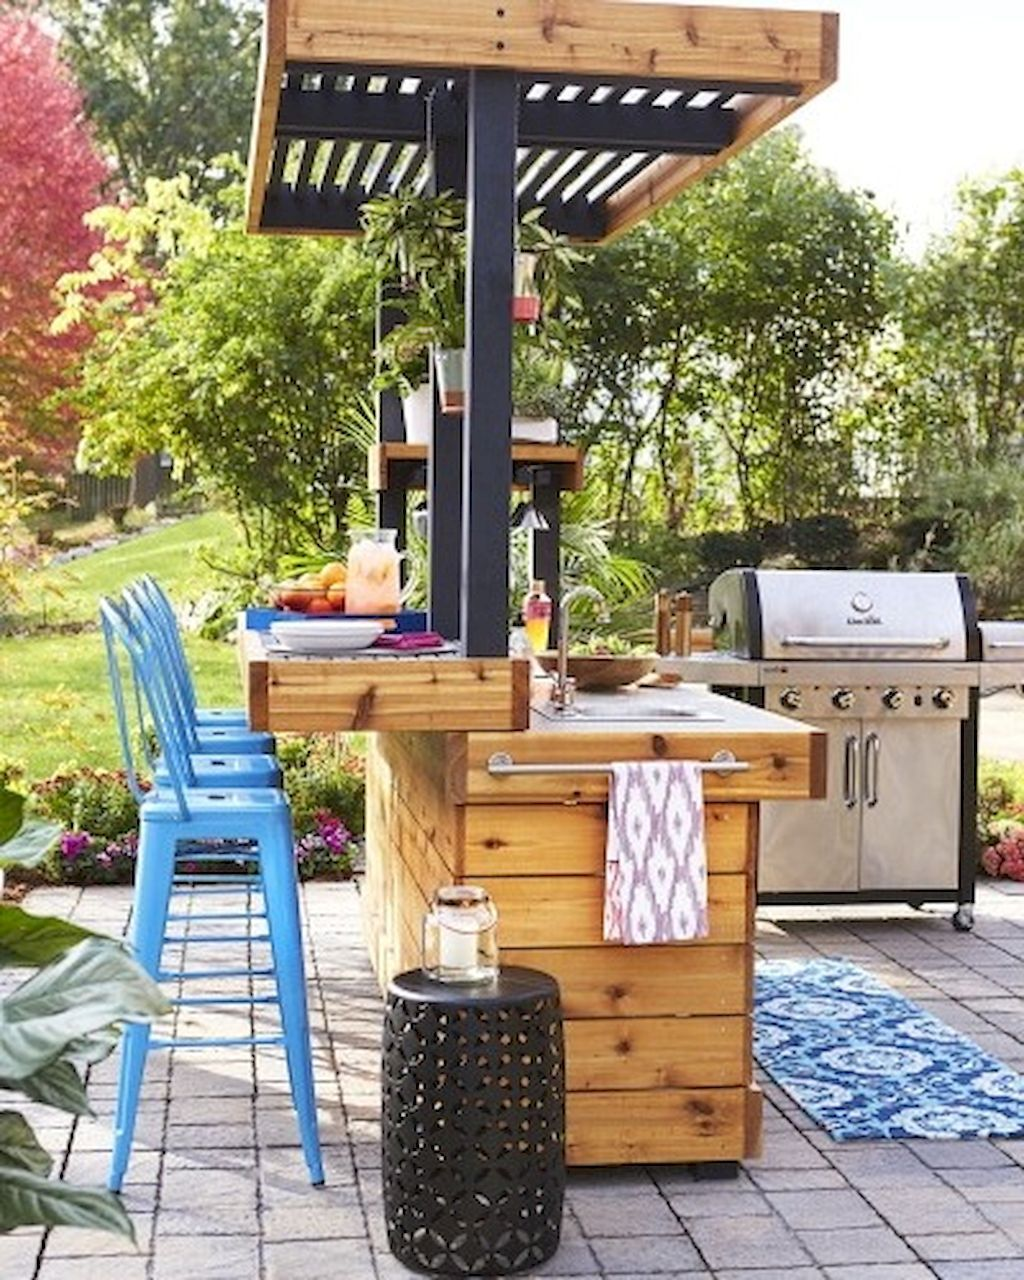 Outdoor Kitchen Designs Ideas Plans For Any Home: 47 Incredible Outdoor Kitchen Design Ideas On Backyard